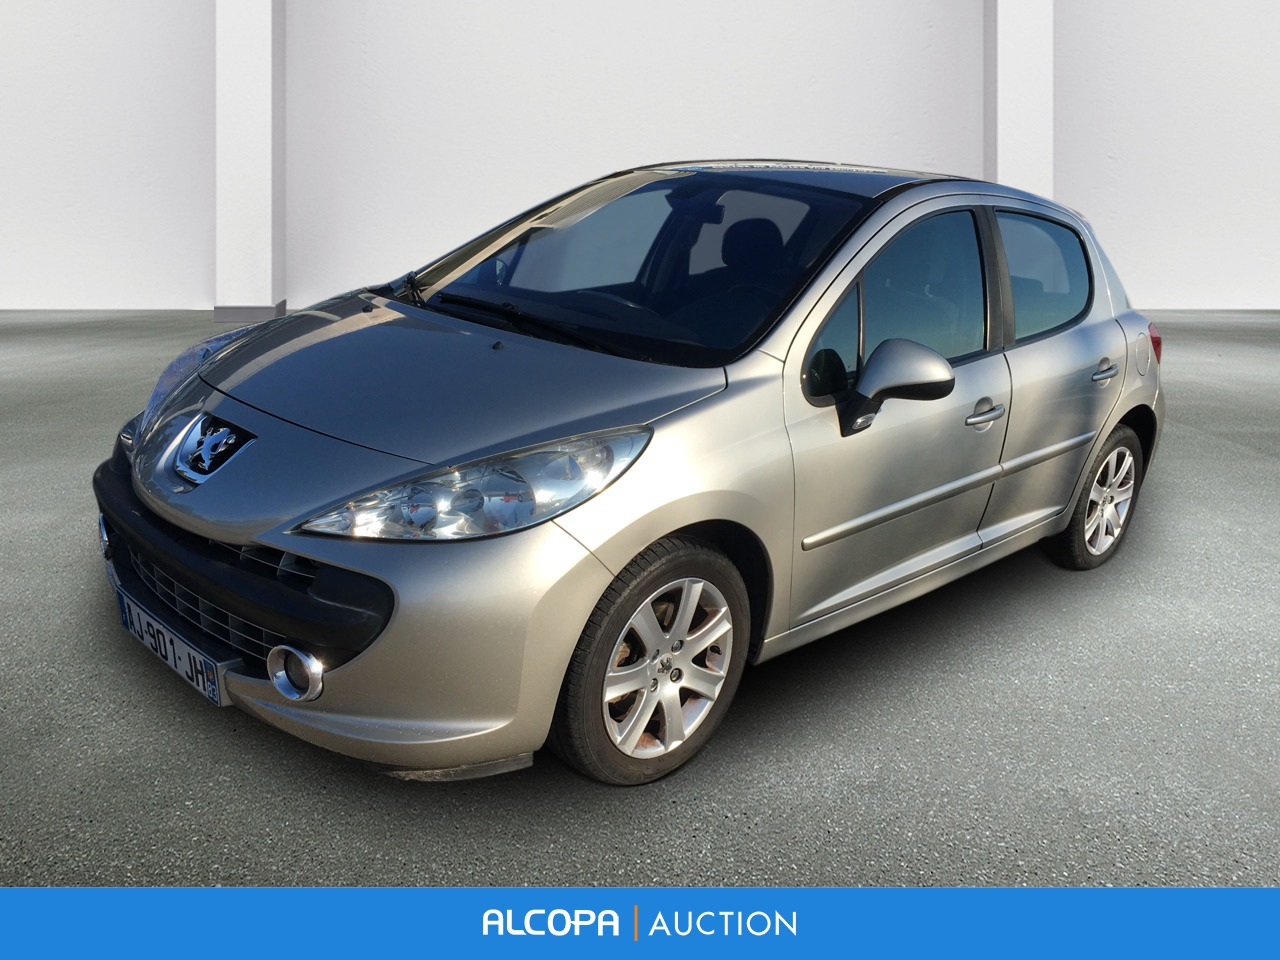 peugeot 207 207 1 6 hdi 16v 90ch sport pack alcopa auction. Black Bedroom Furniture Sets. Home Design Ideas